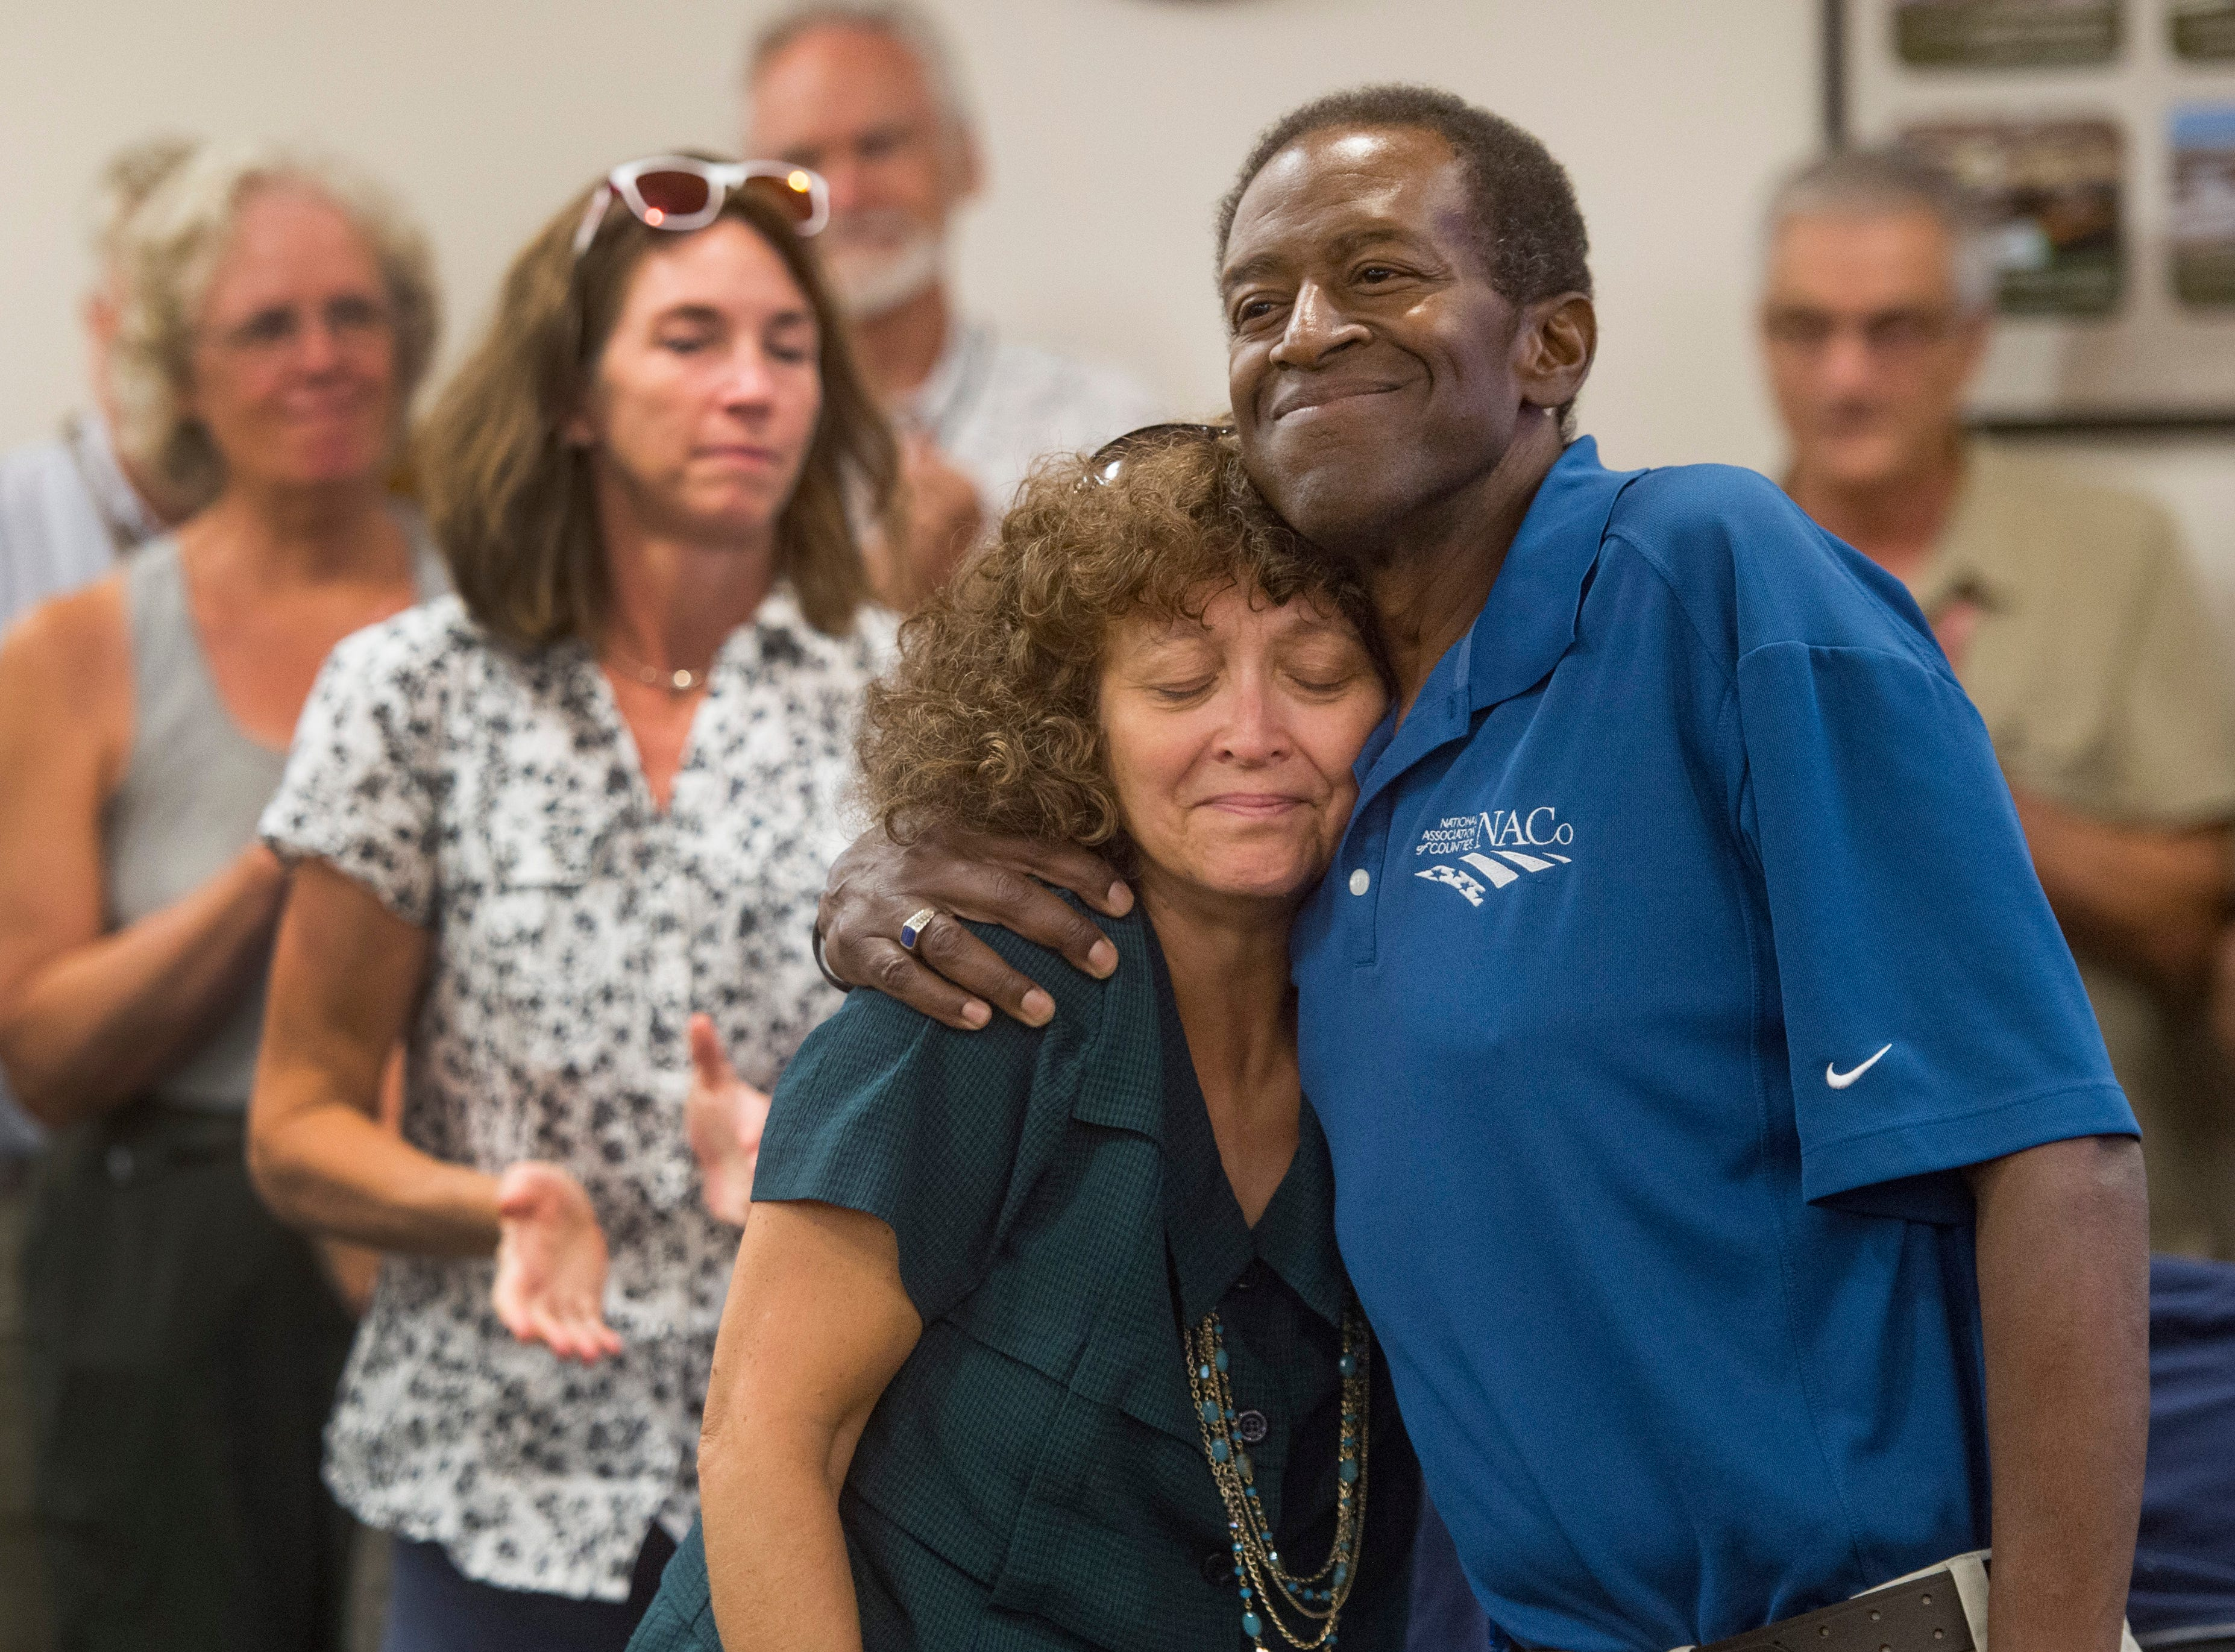 County Commissioner Lew Gaiter III hugs his wife Jeannette after speaking to a packed crowd of friends and colleagues during a gathering to celebrate his life at the Larimer County Courthouse on Wednesday, August 15, 2018. Gaiter III was given six to 12 weeks to live after the cancer he has had for nearly a decade began to take its toll earlier this month.